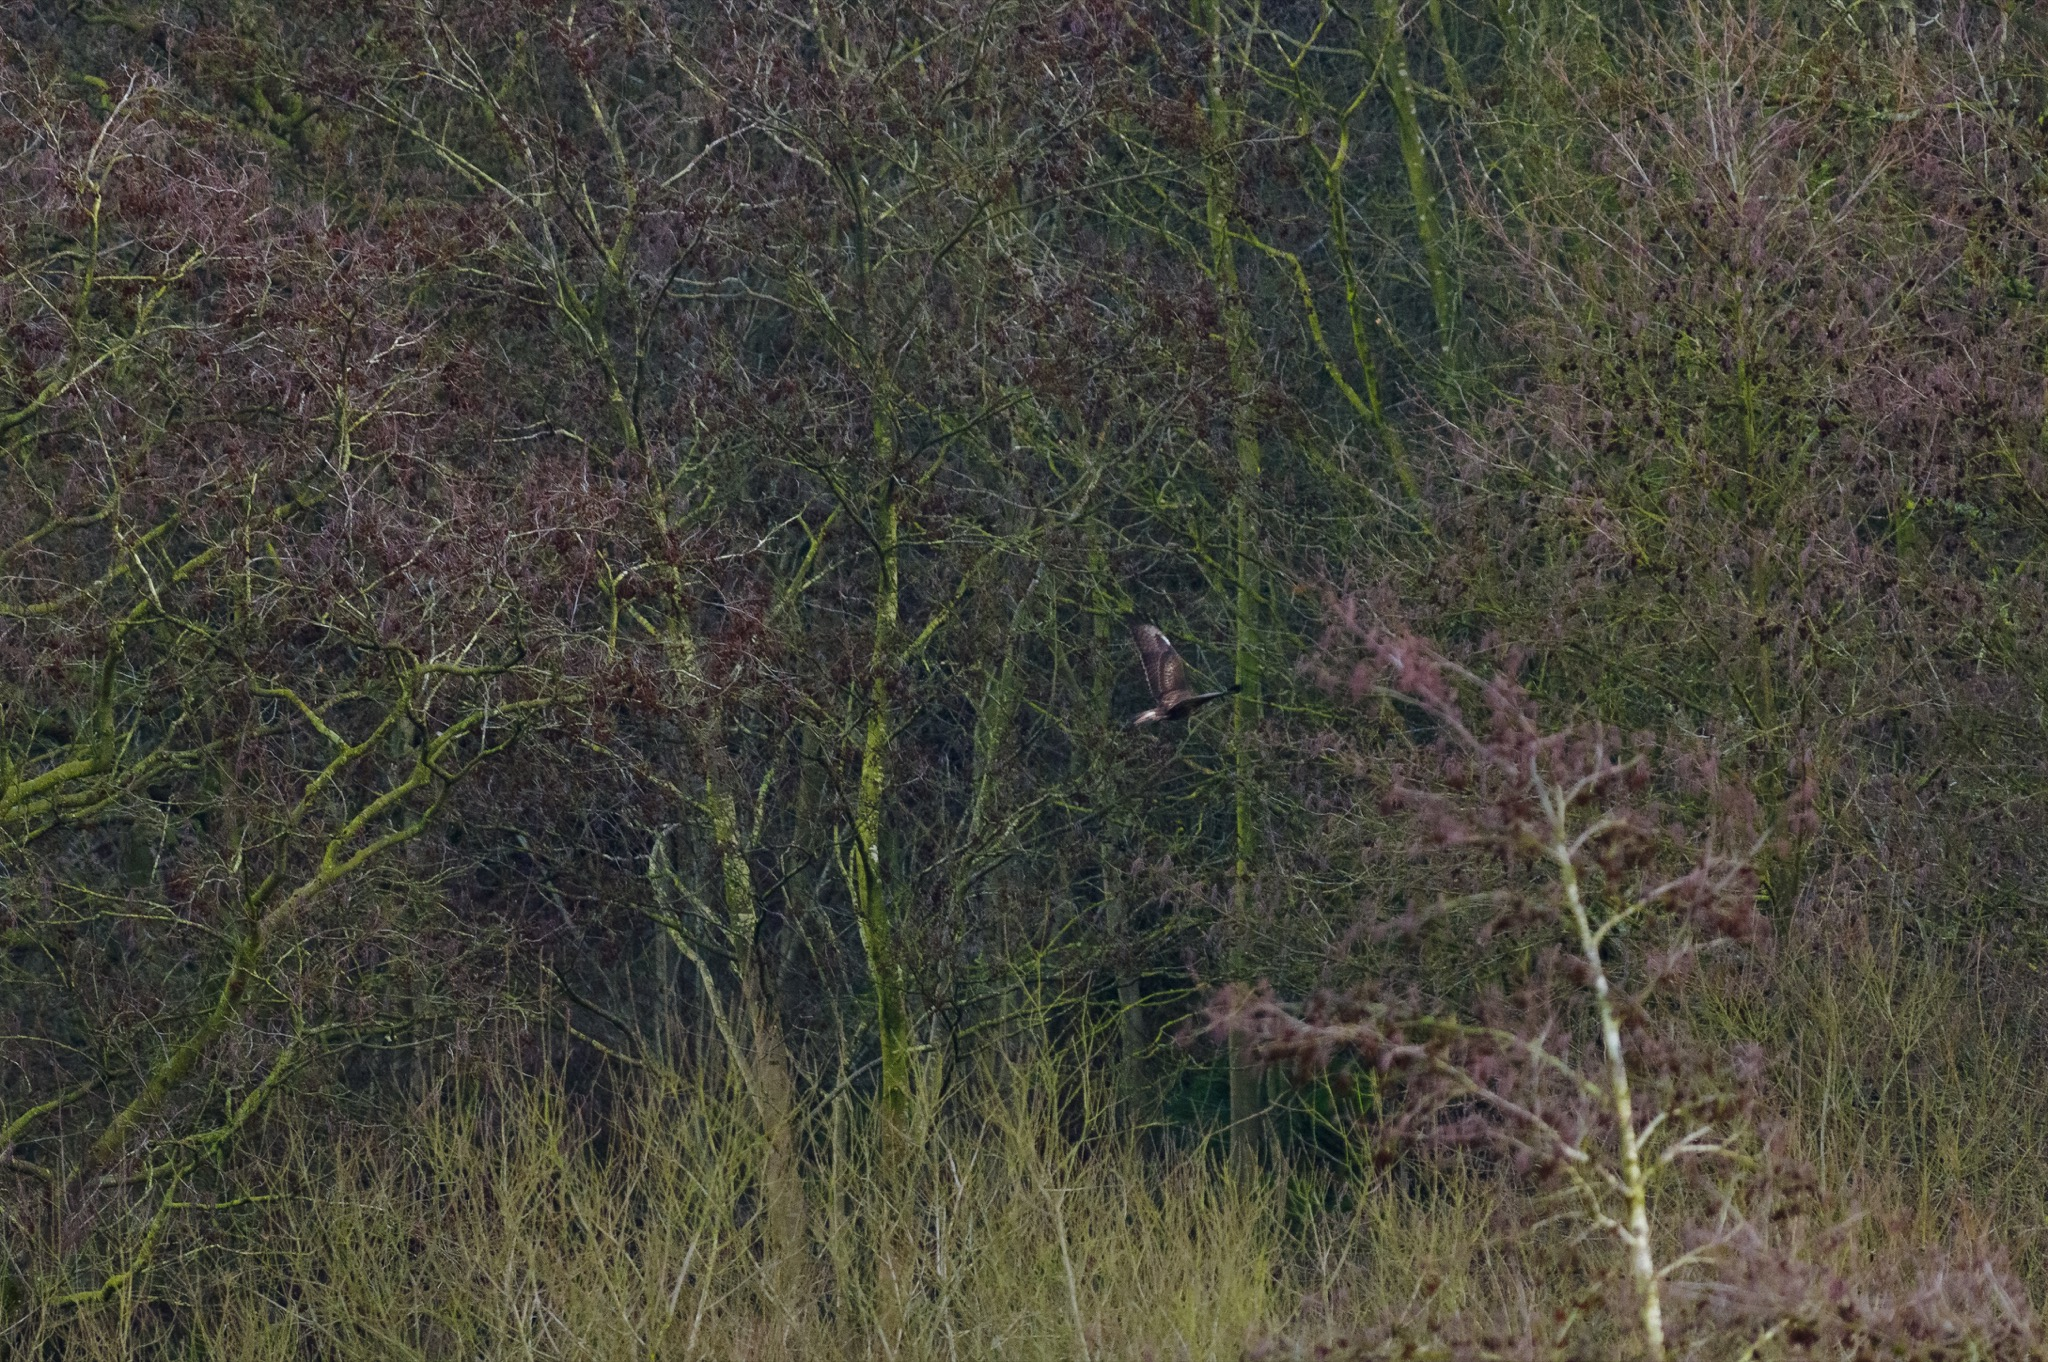 The buzzard disappears into the trees © Alex Roddie